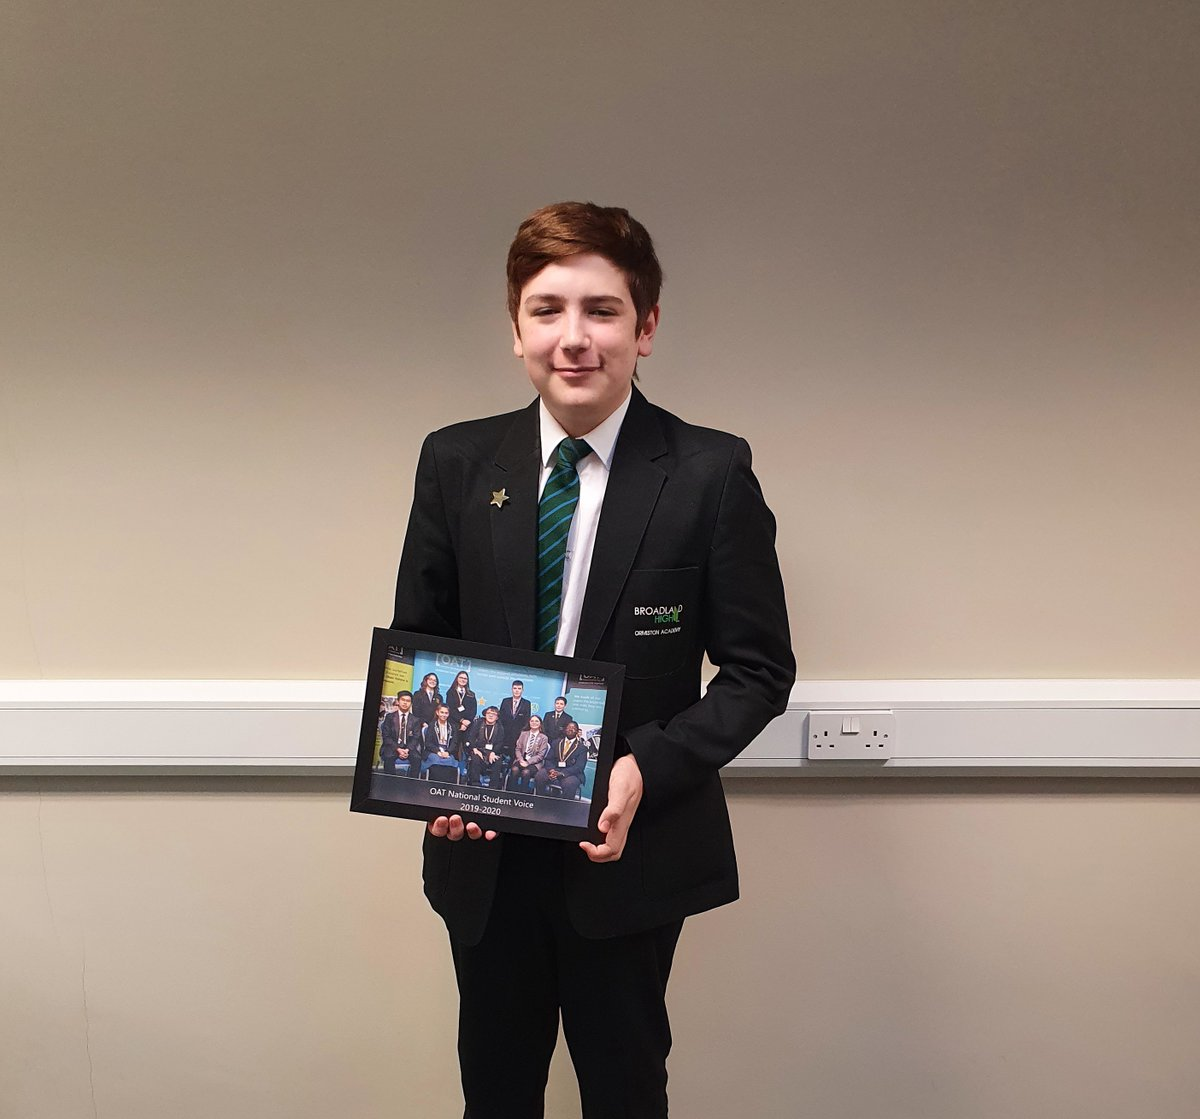 Well done to Ben for all of his work with the OAT National Student Voice team, we're very proud of you. #iwill, #studentvoice #inspiringstudentstosucceed